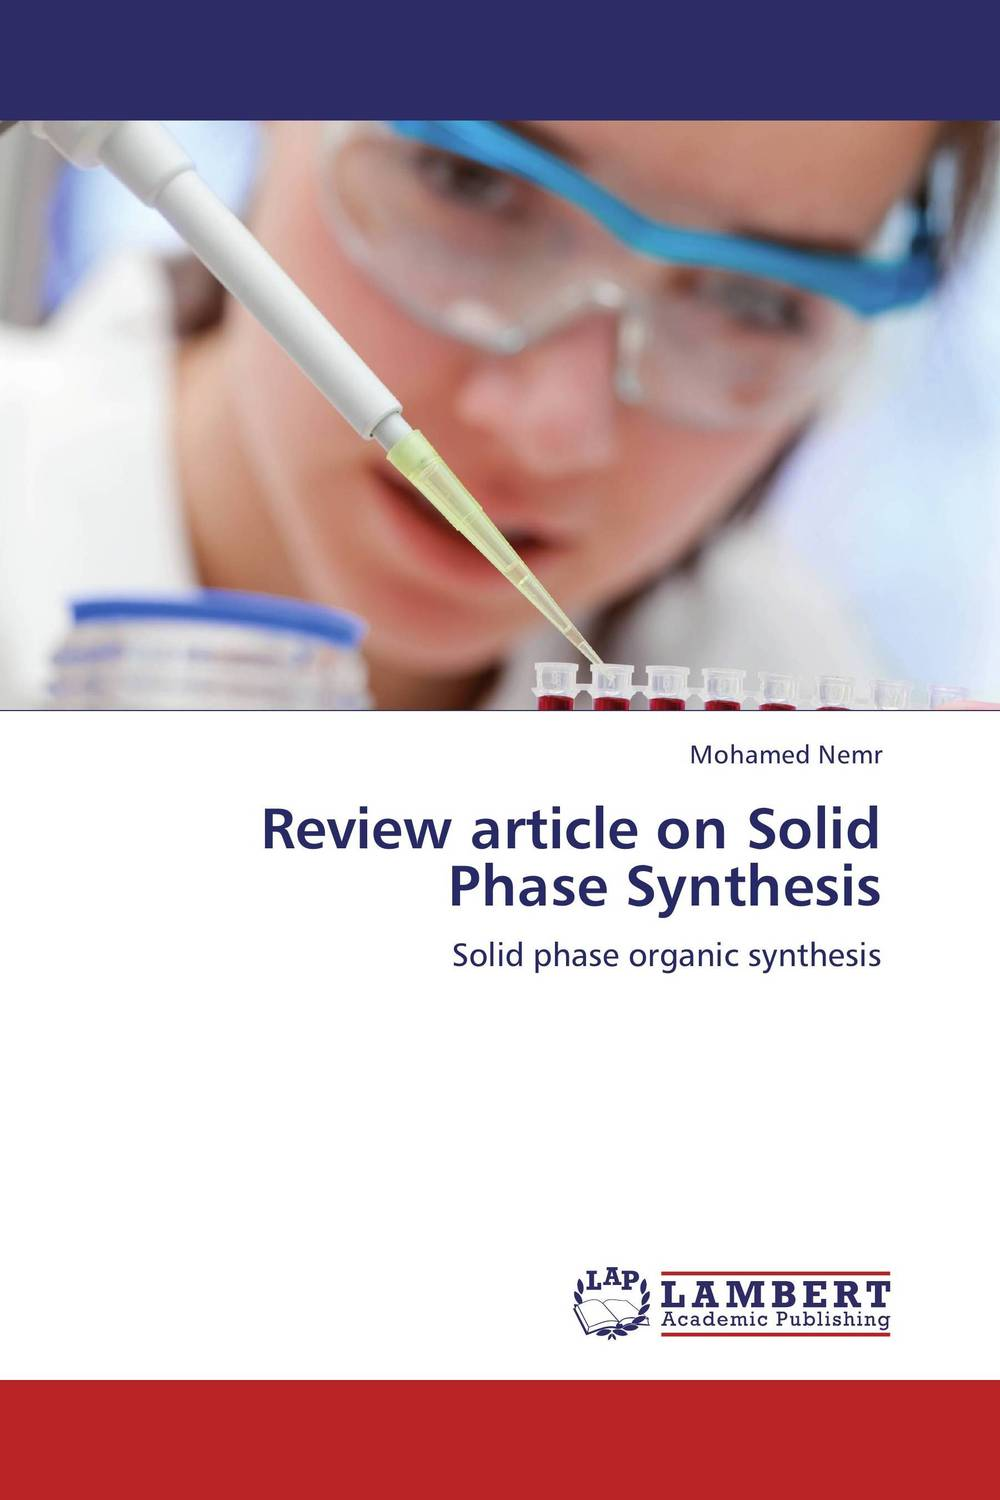 Review article on Solid Phase Synthesis dennis hall g boronic acids preparation and applications in organic synthesis medicine and materials